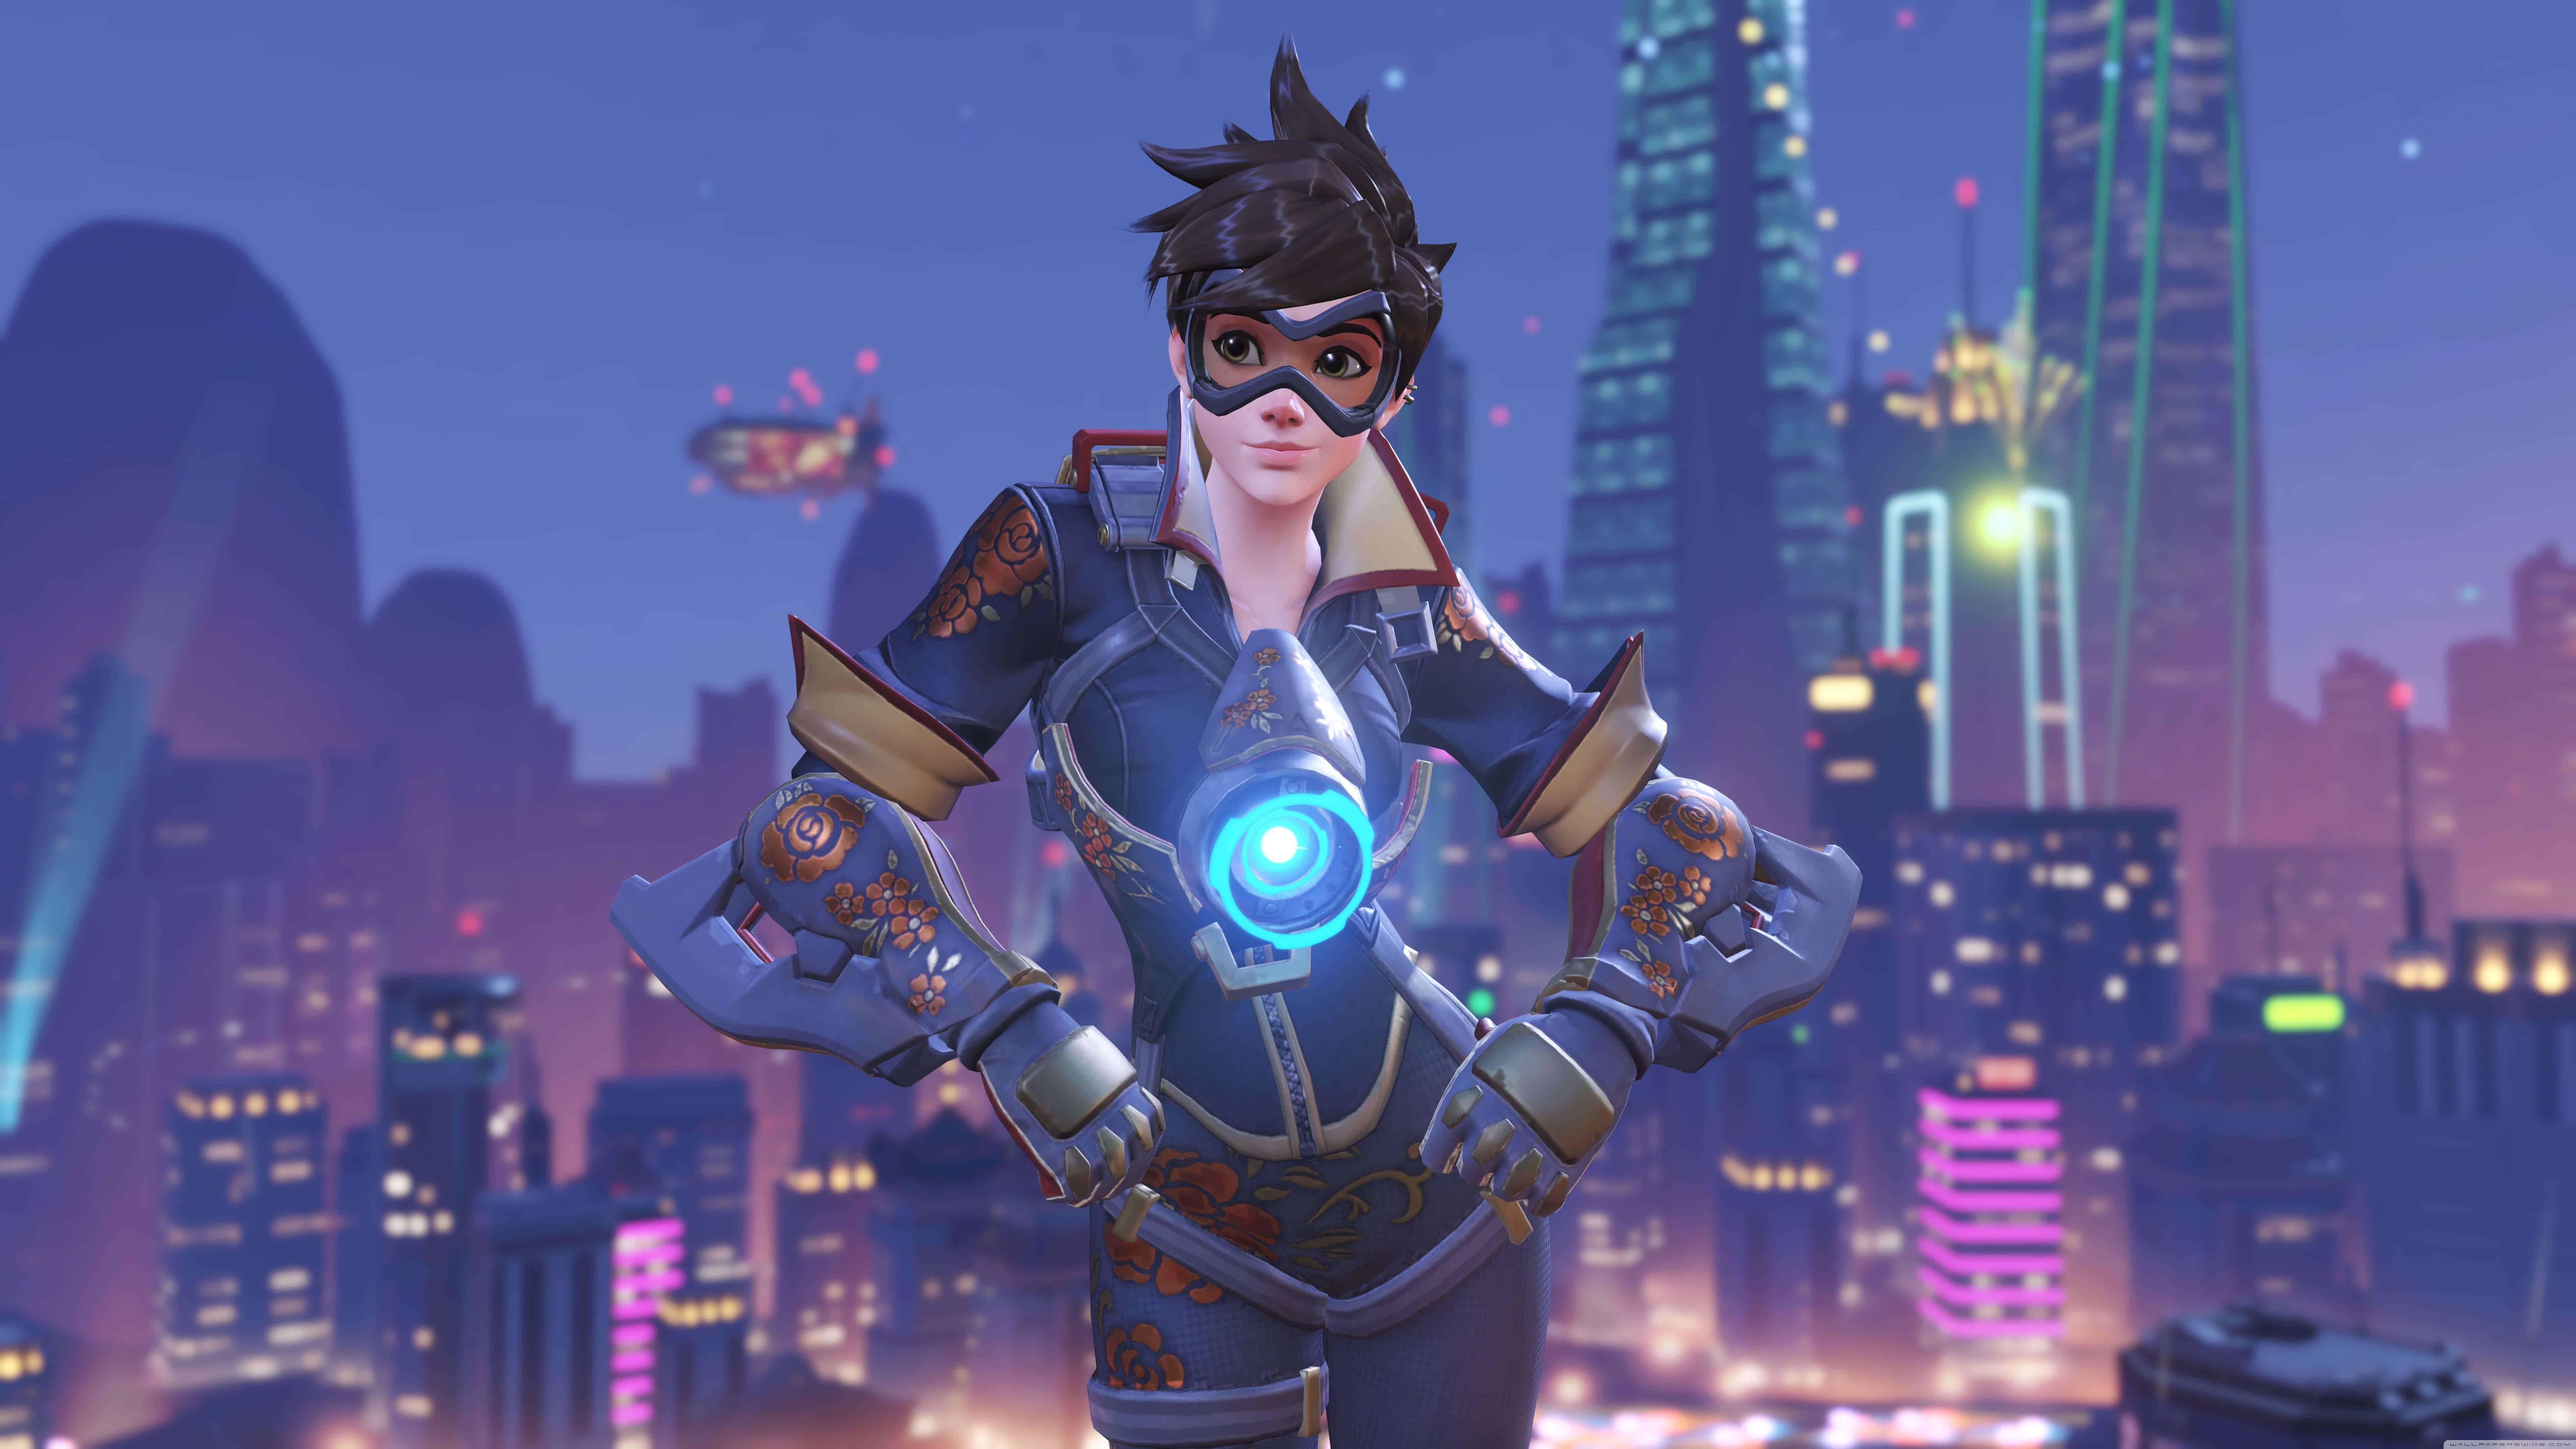 overwatch tracer year of the rooster skin uhd 8k wallpaper